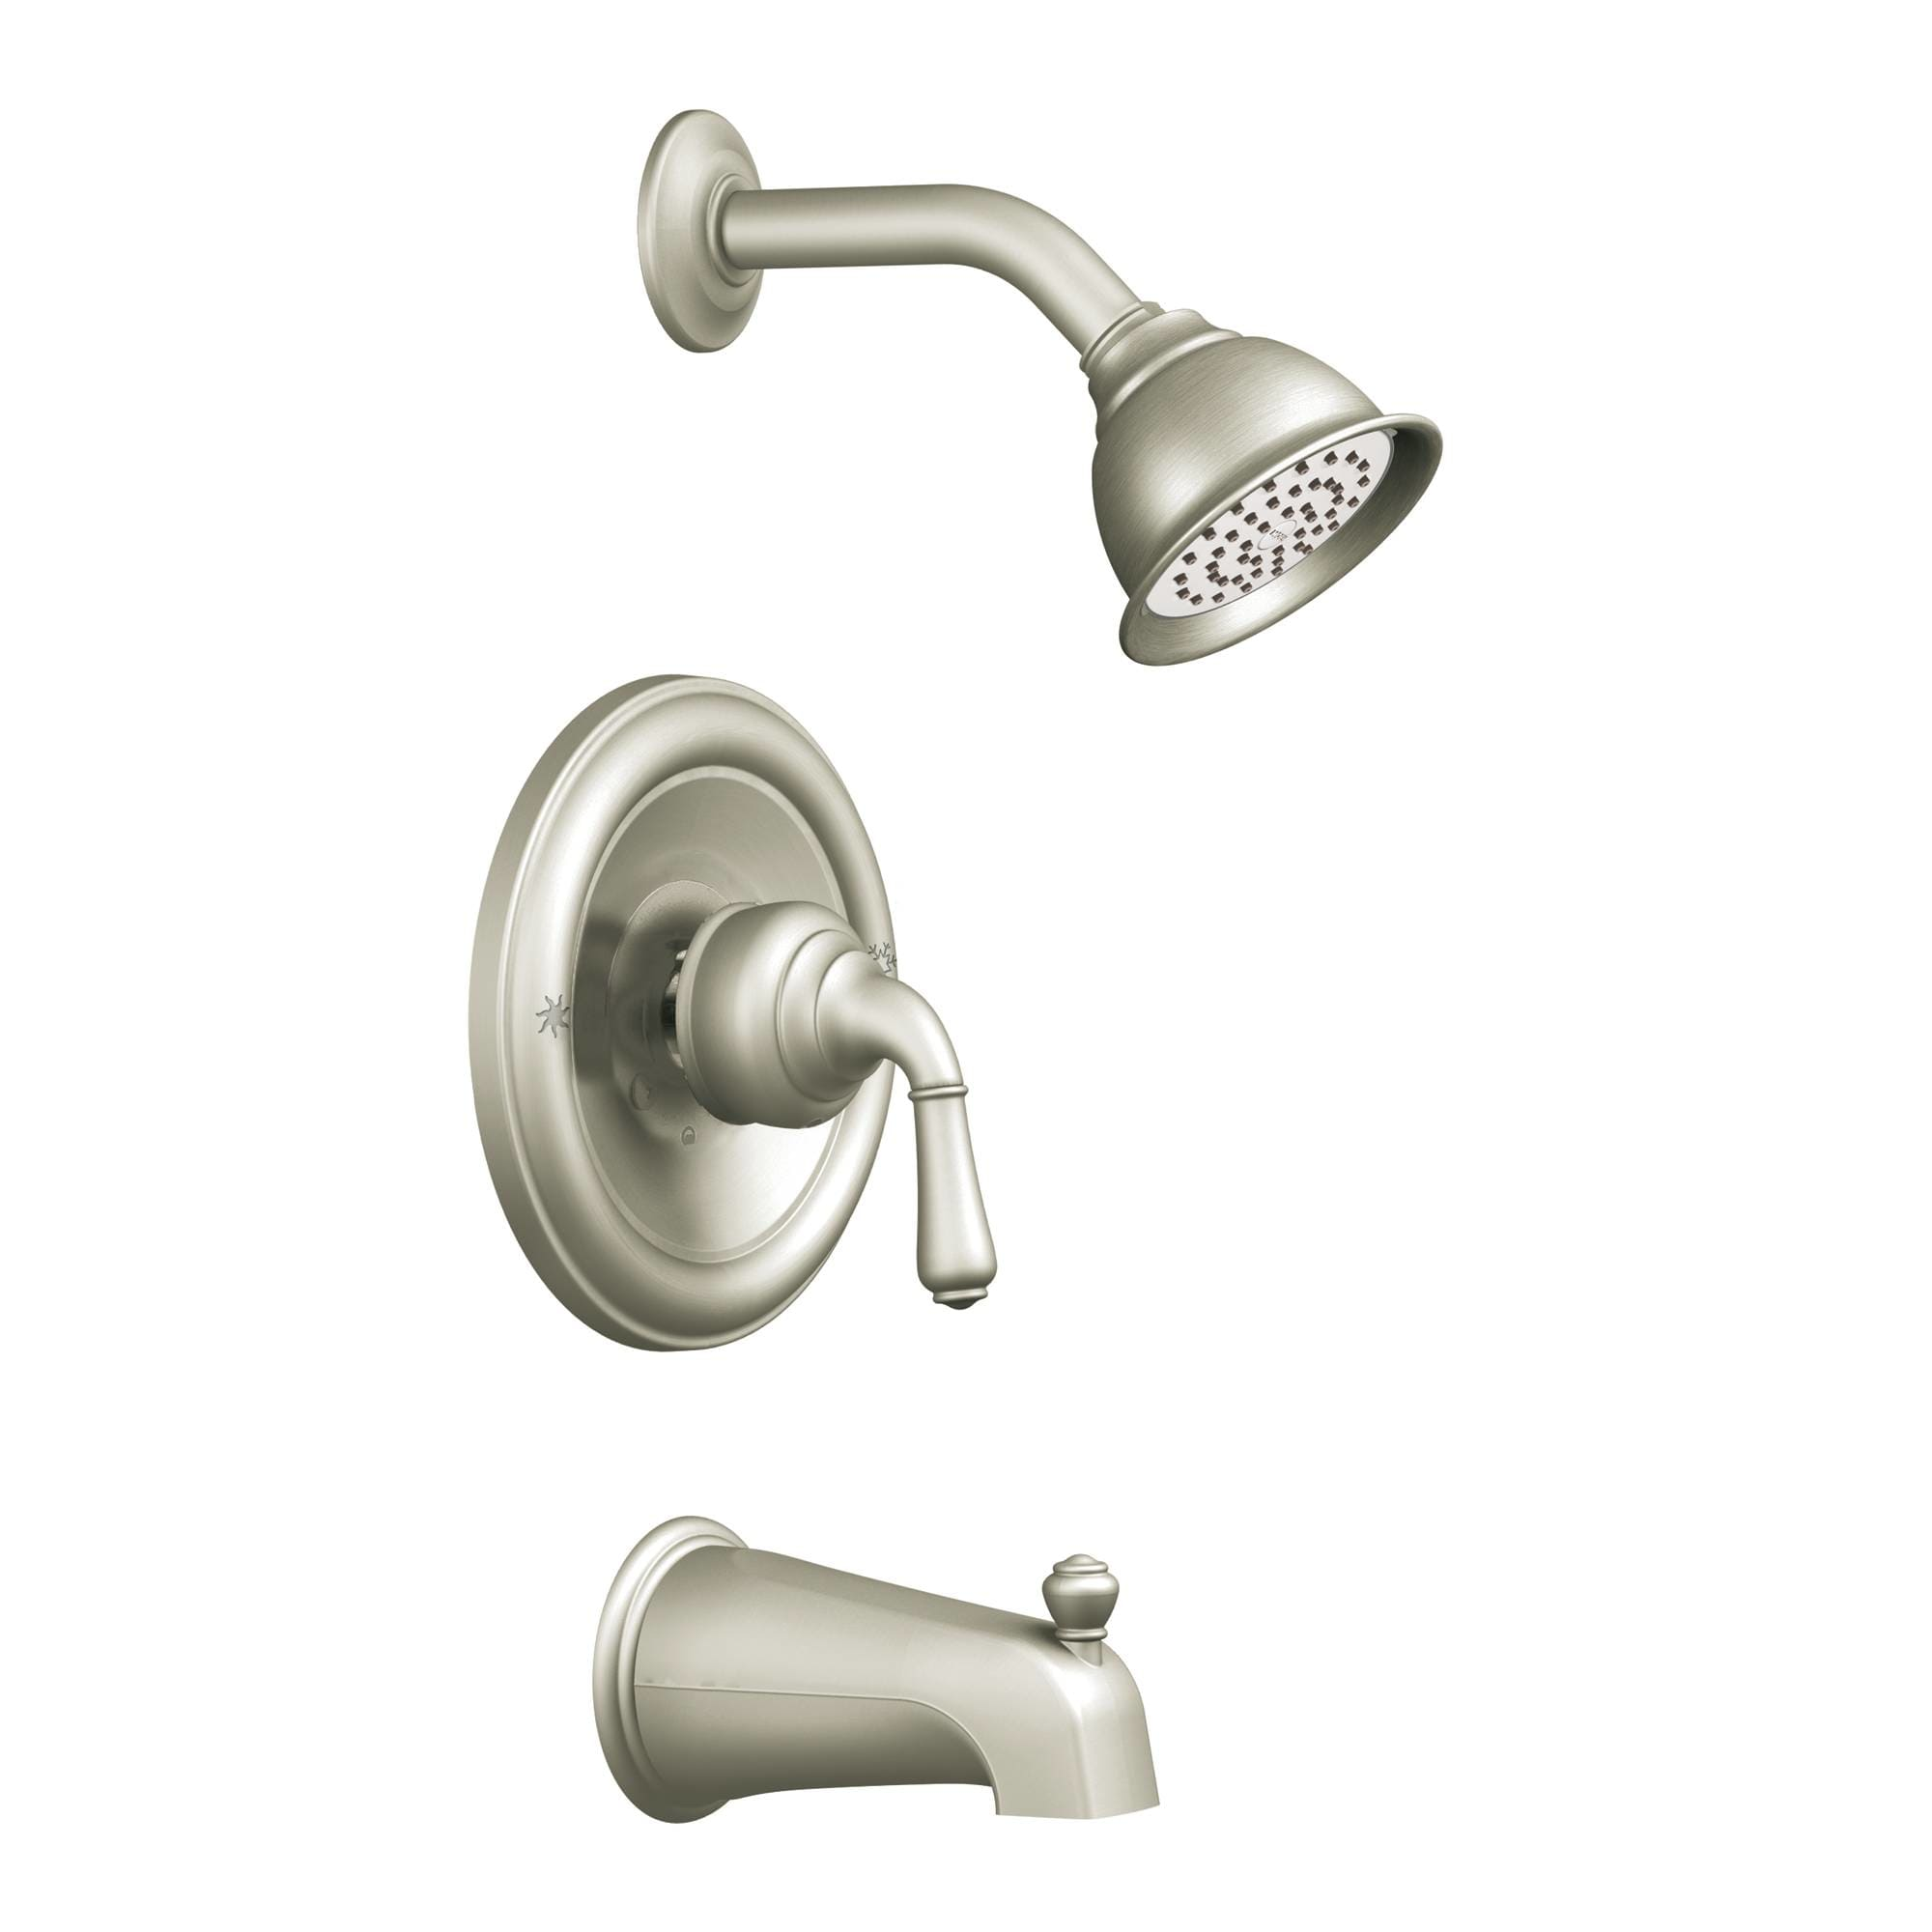 moen monticello repair of beautiful handle diagram single delta part kitchen fresh faucet faucets